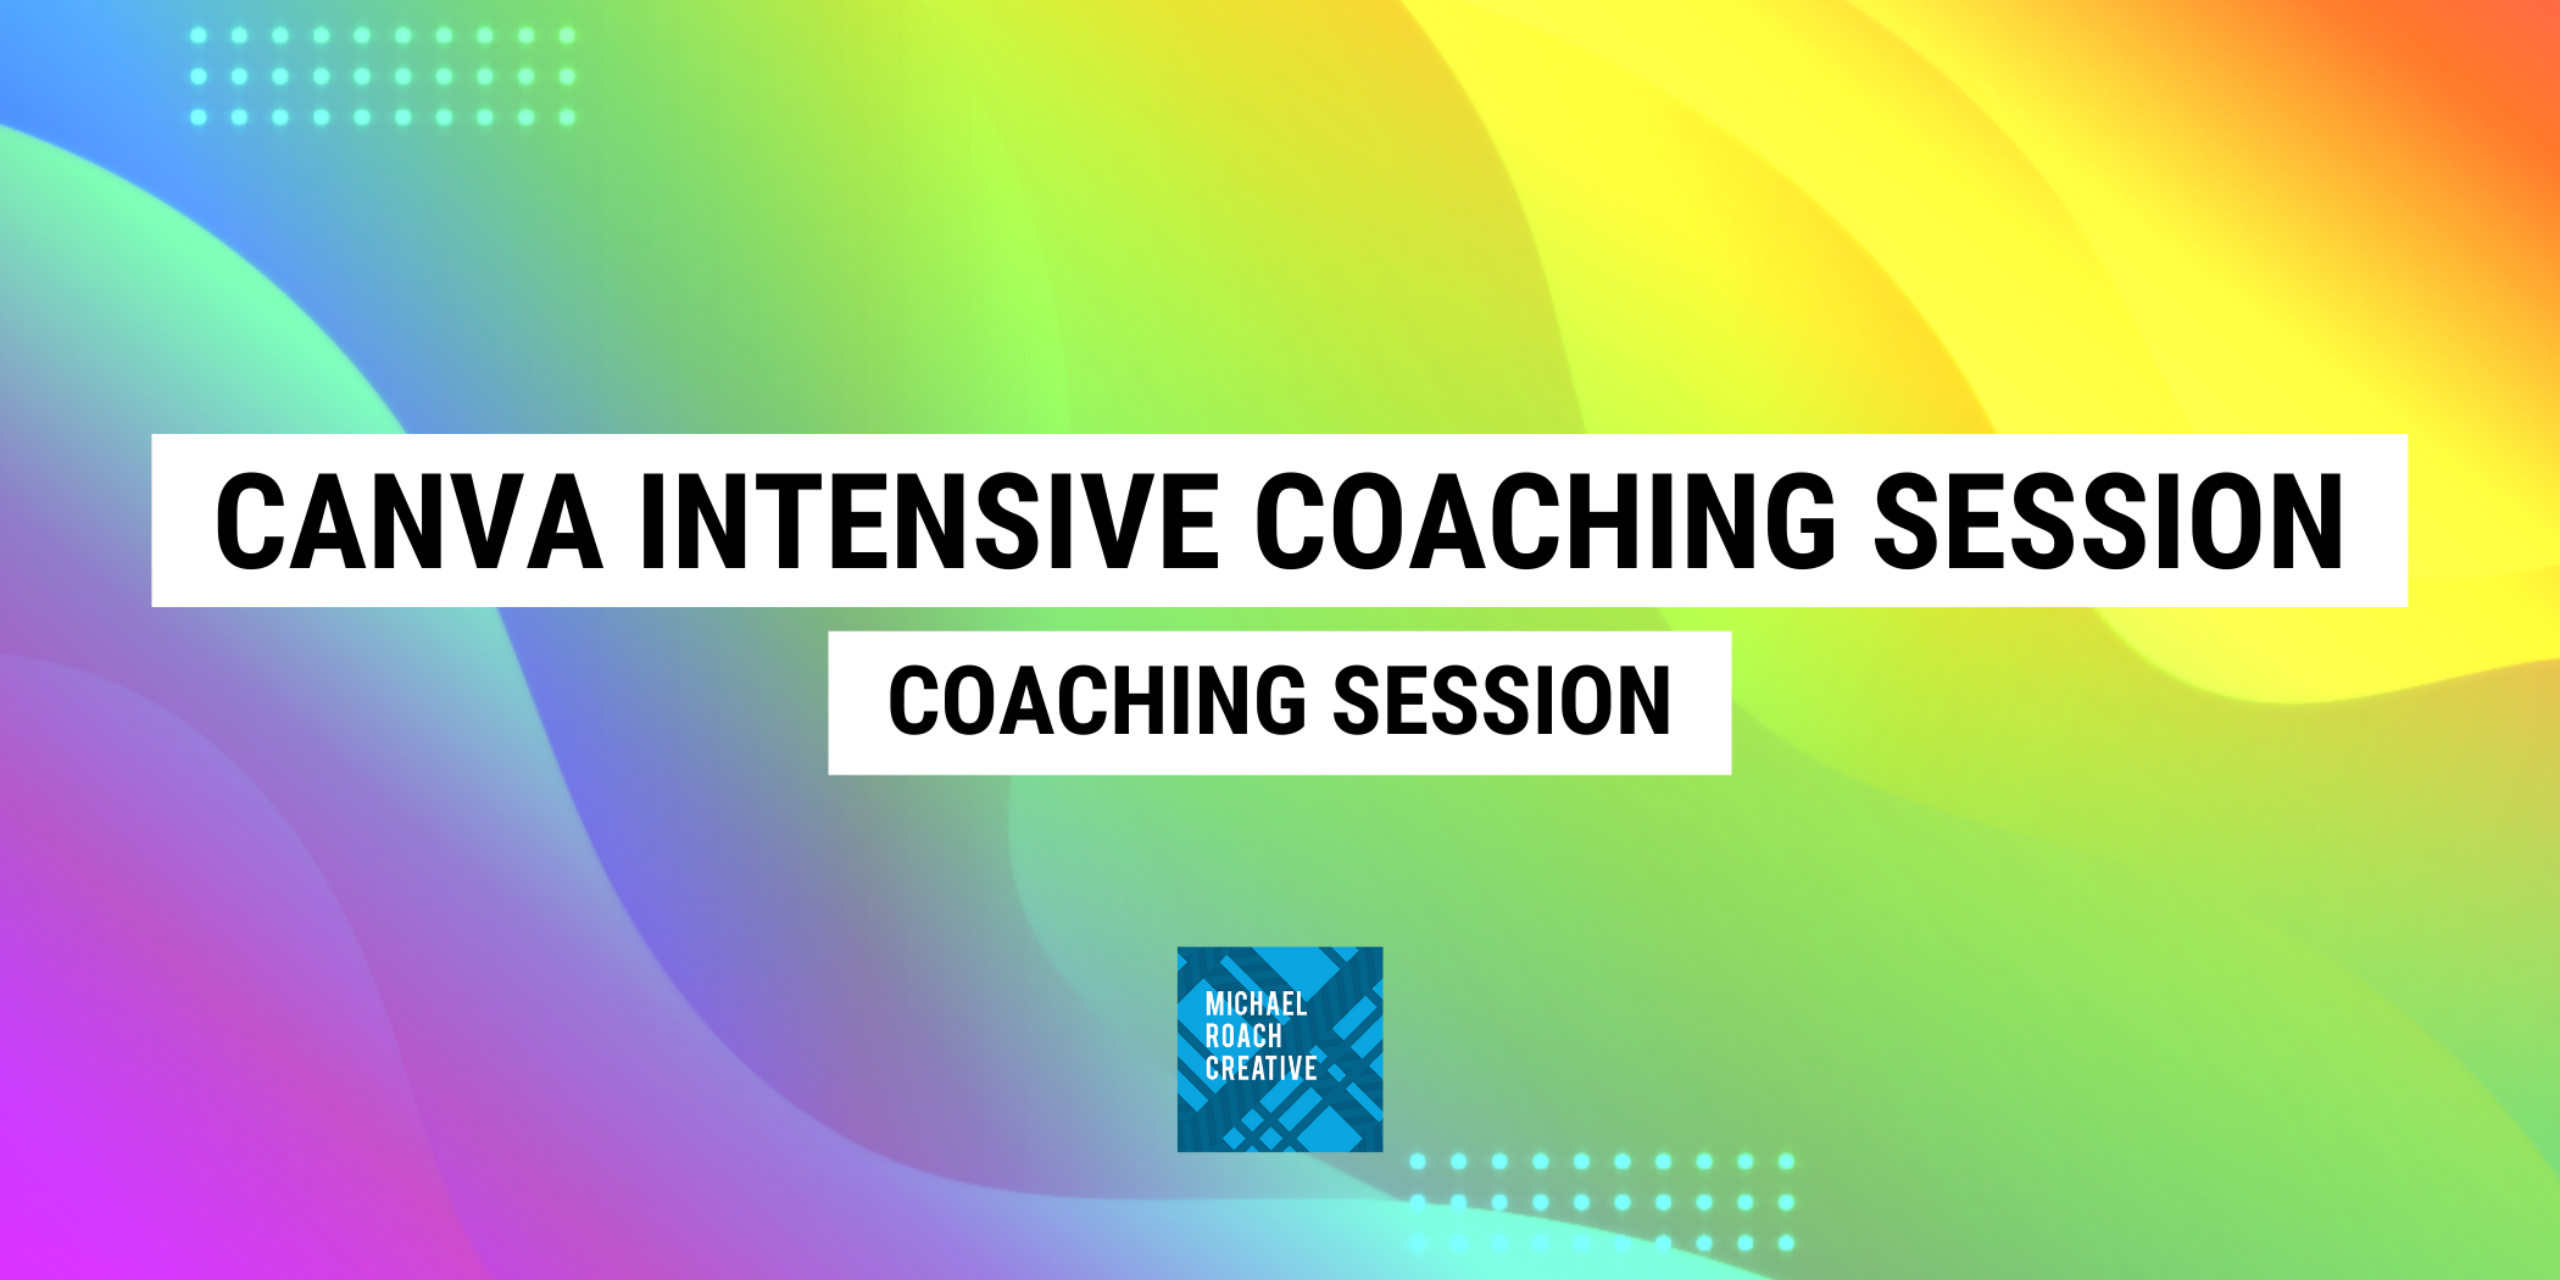 Canva Intensive Coaching Session